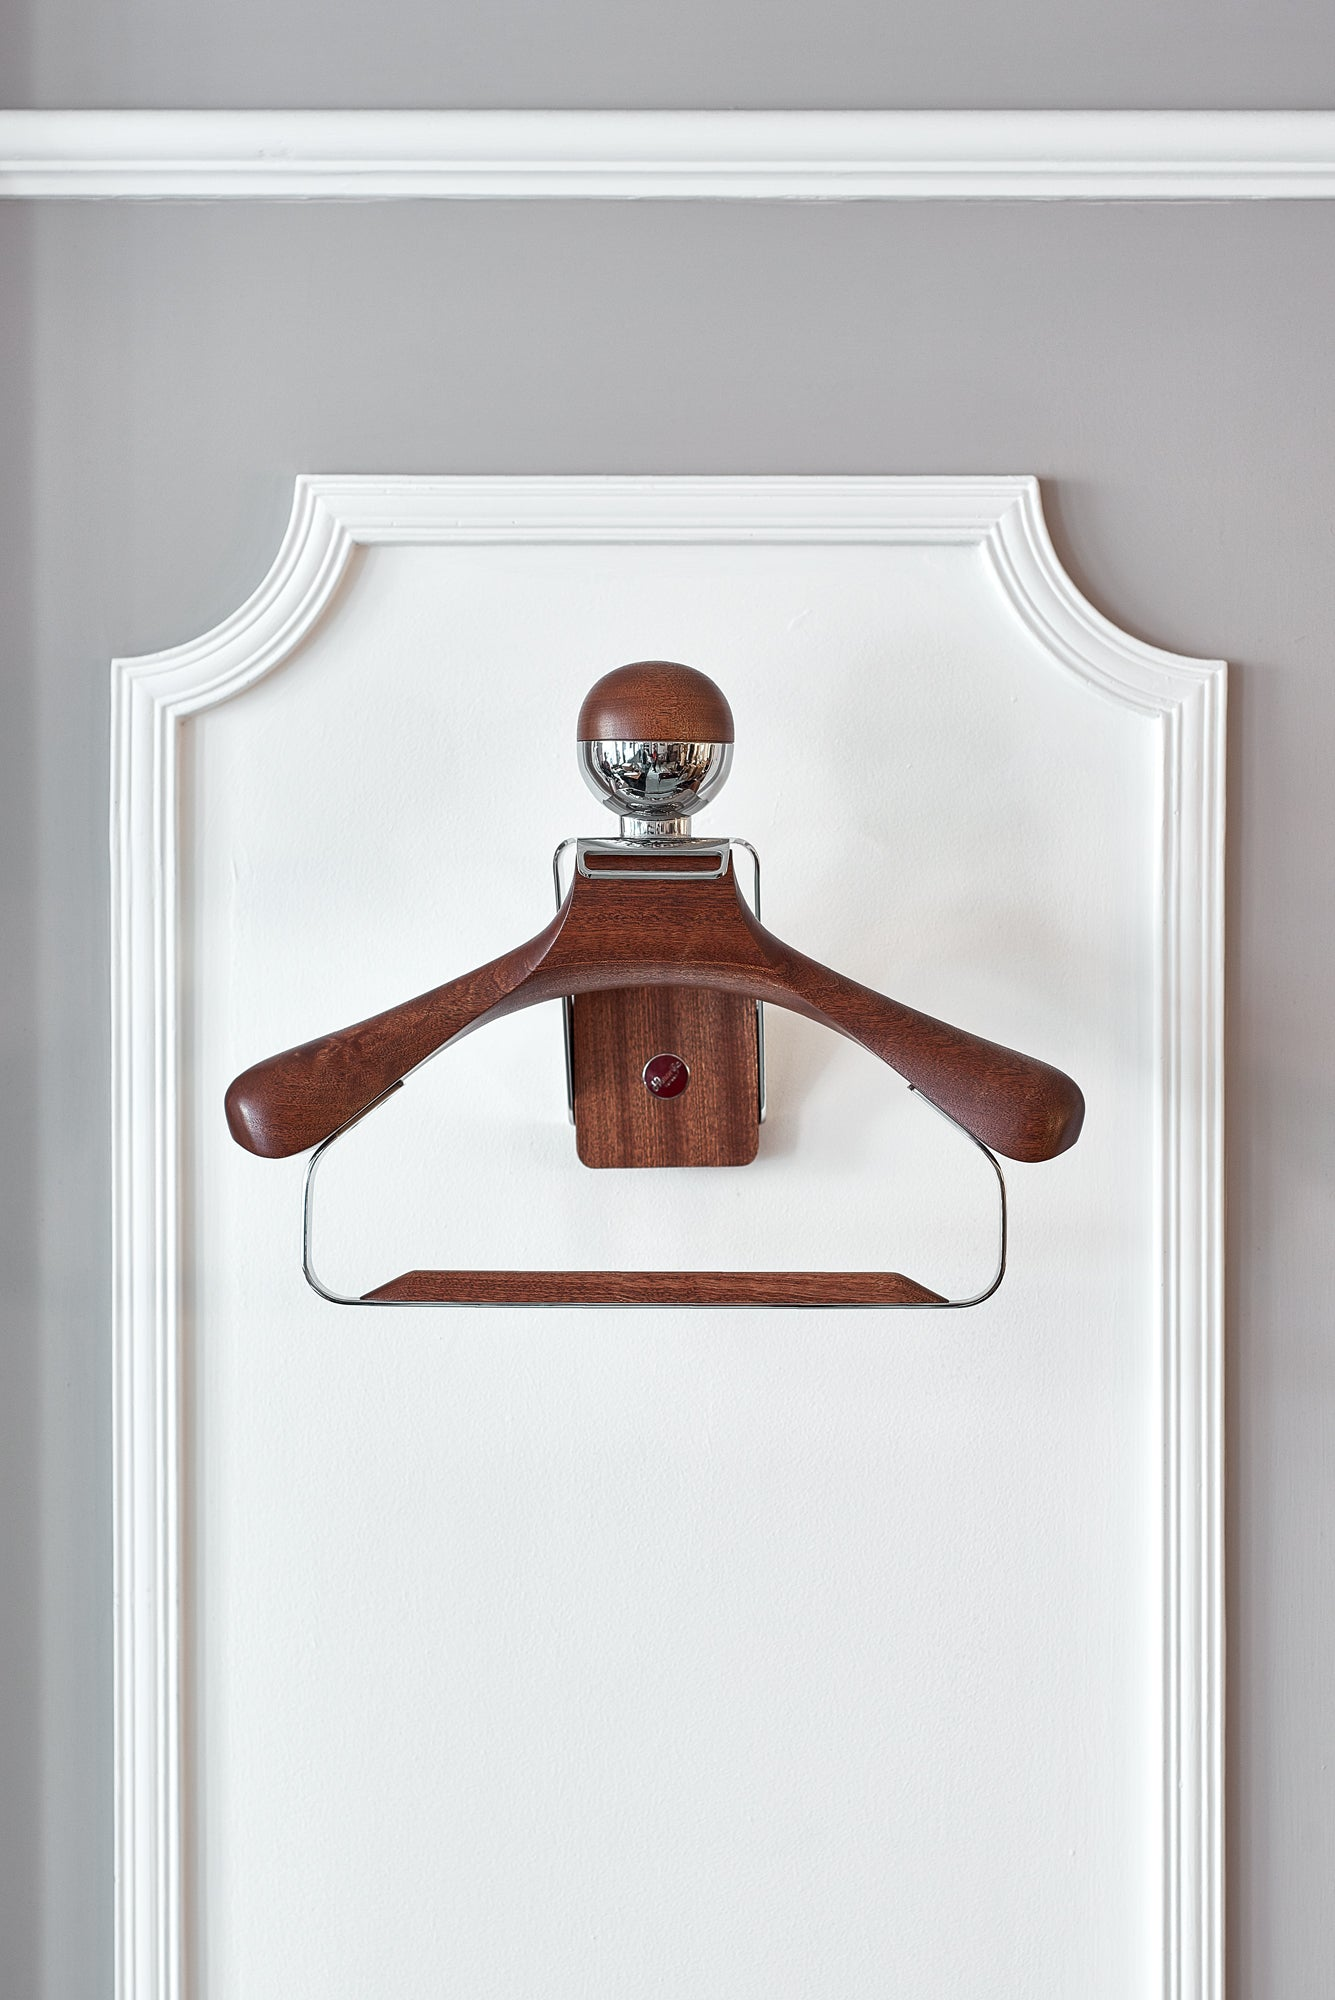 The Wall Mounted Valet